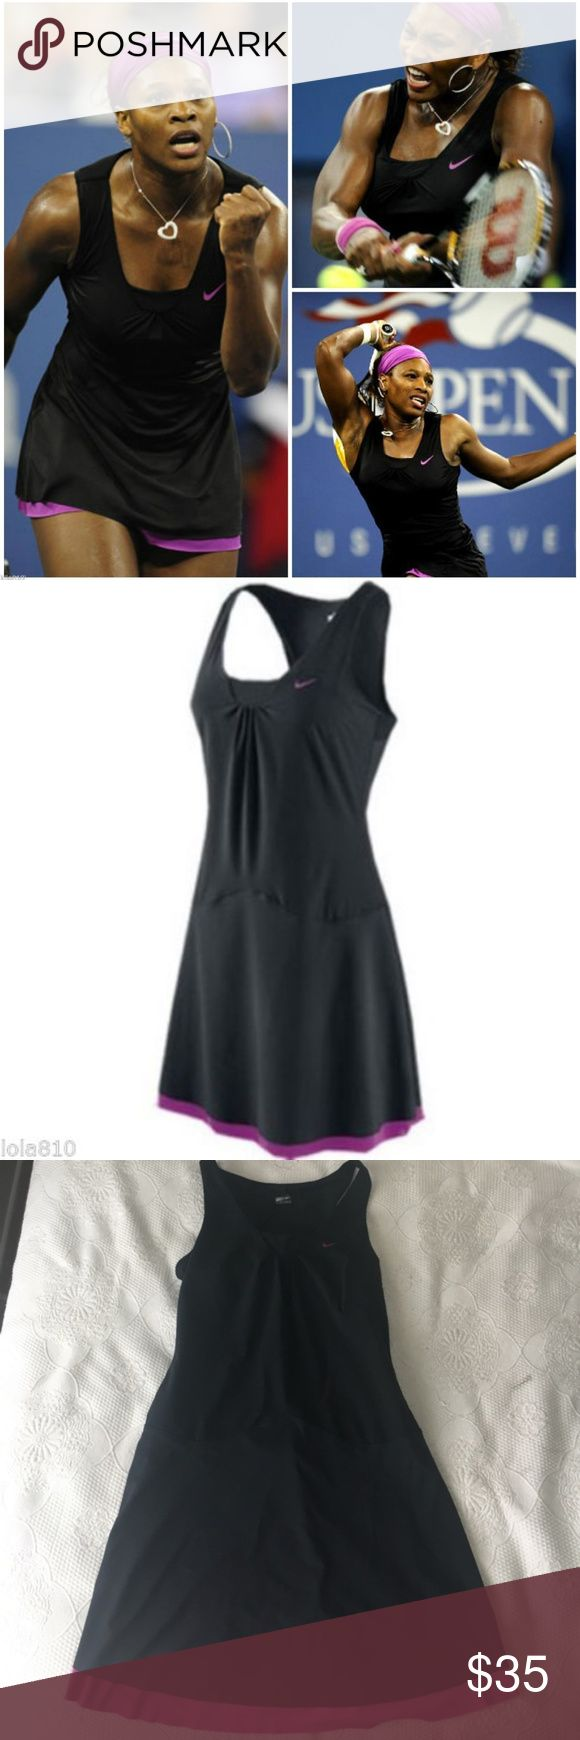 NIKE TENNIS Dress Serena Sphere React - Medium Look good on the court EUC NIKE TENNIS Dress Serena Williams Sphere React Cool Sri-fit Black Magenta - Sz Medium  Black with pink trim and underskirt. (Does not come with tennis shorts) Dri-Fit material with build in bra.  Body is 86% polyester and 14% spandex Nike Dresses